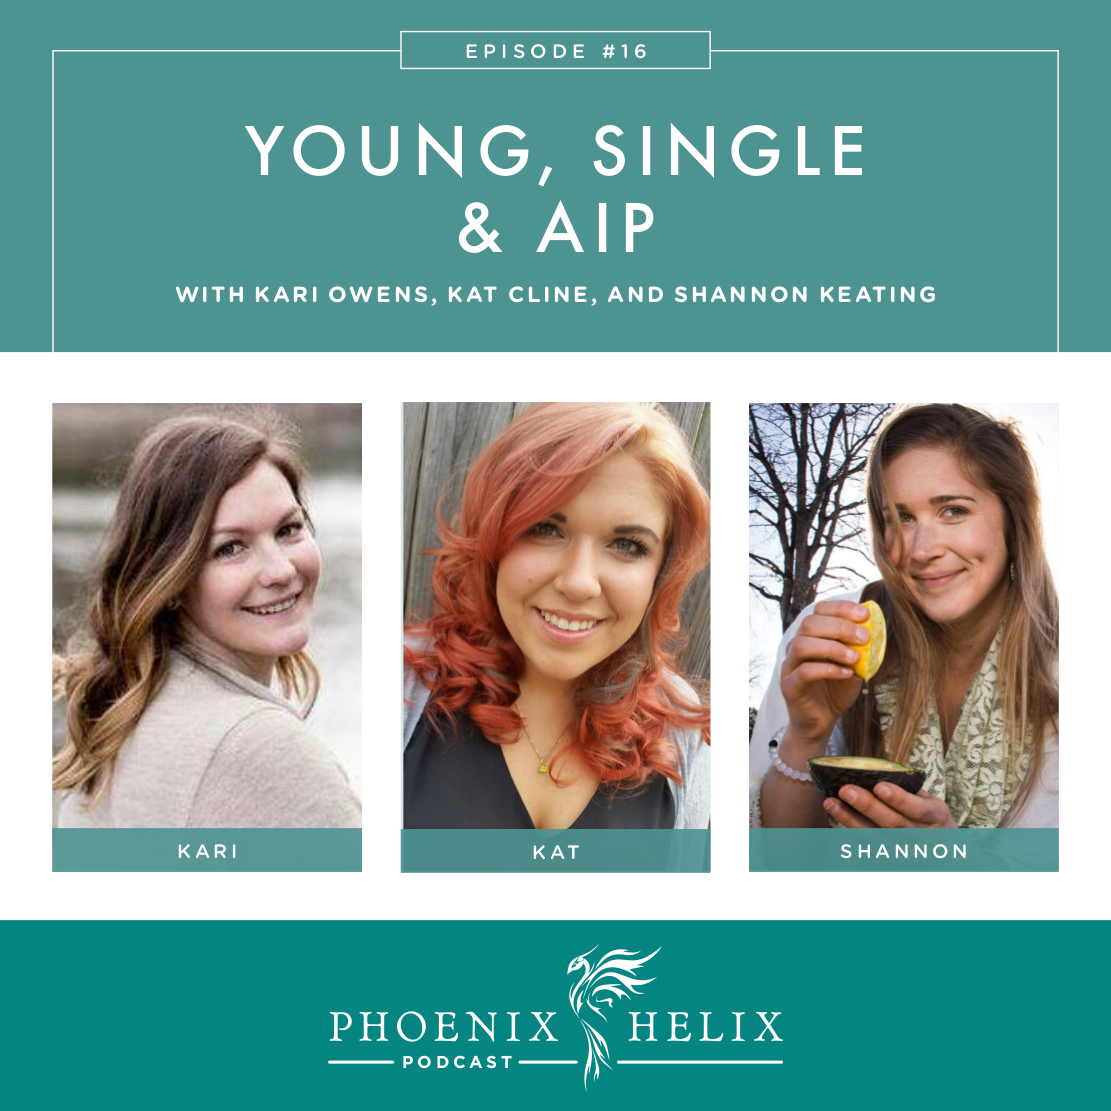 Young, Single and AIP | Phoenix Helix Podcast